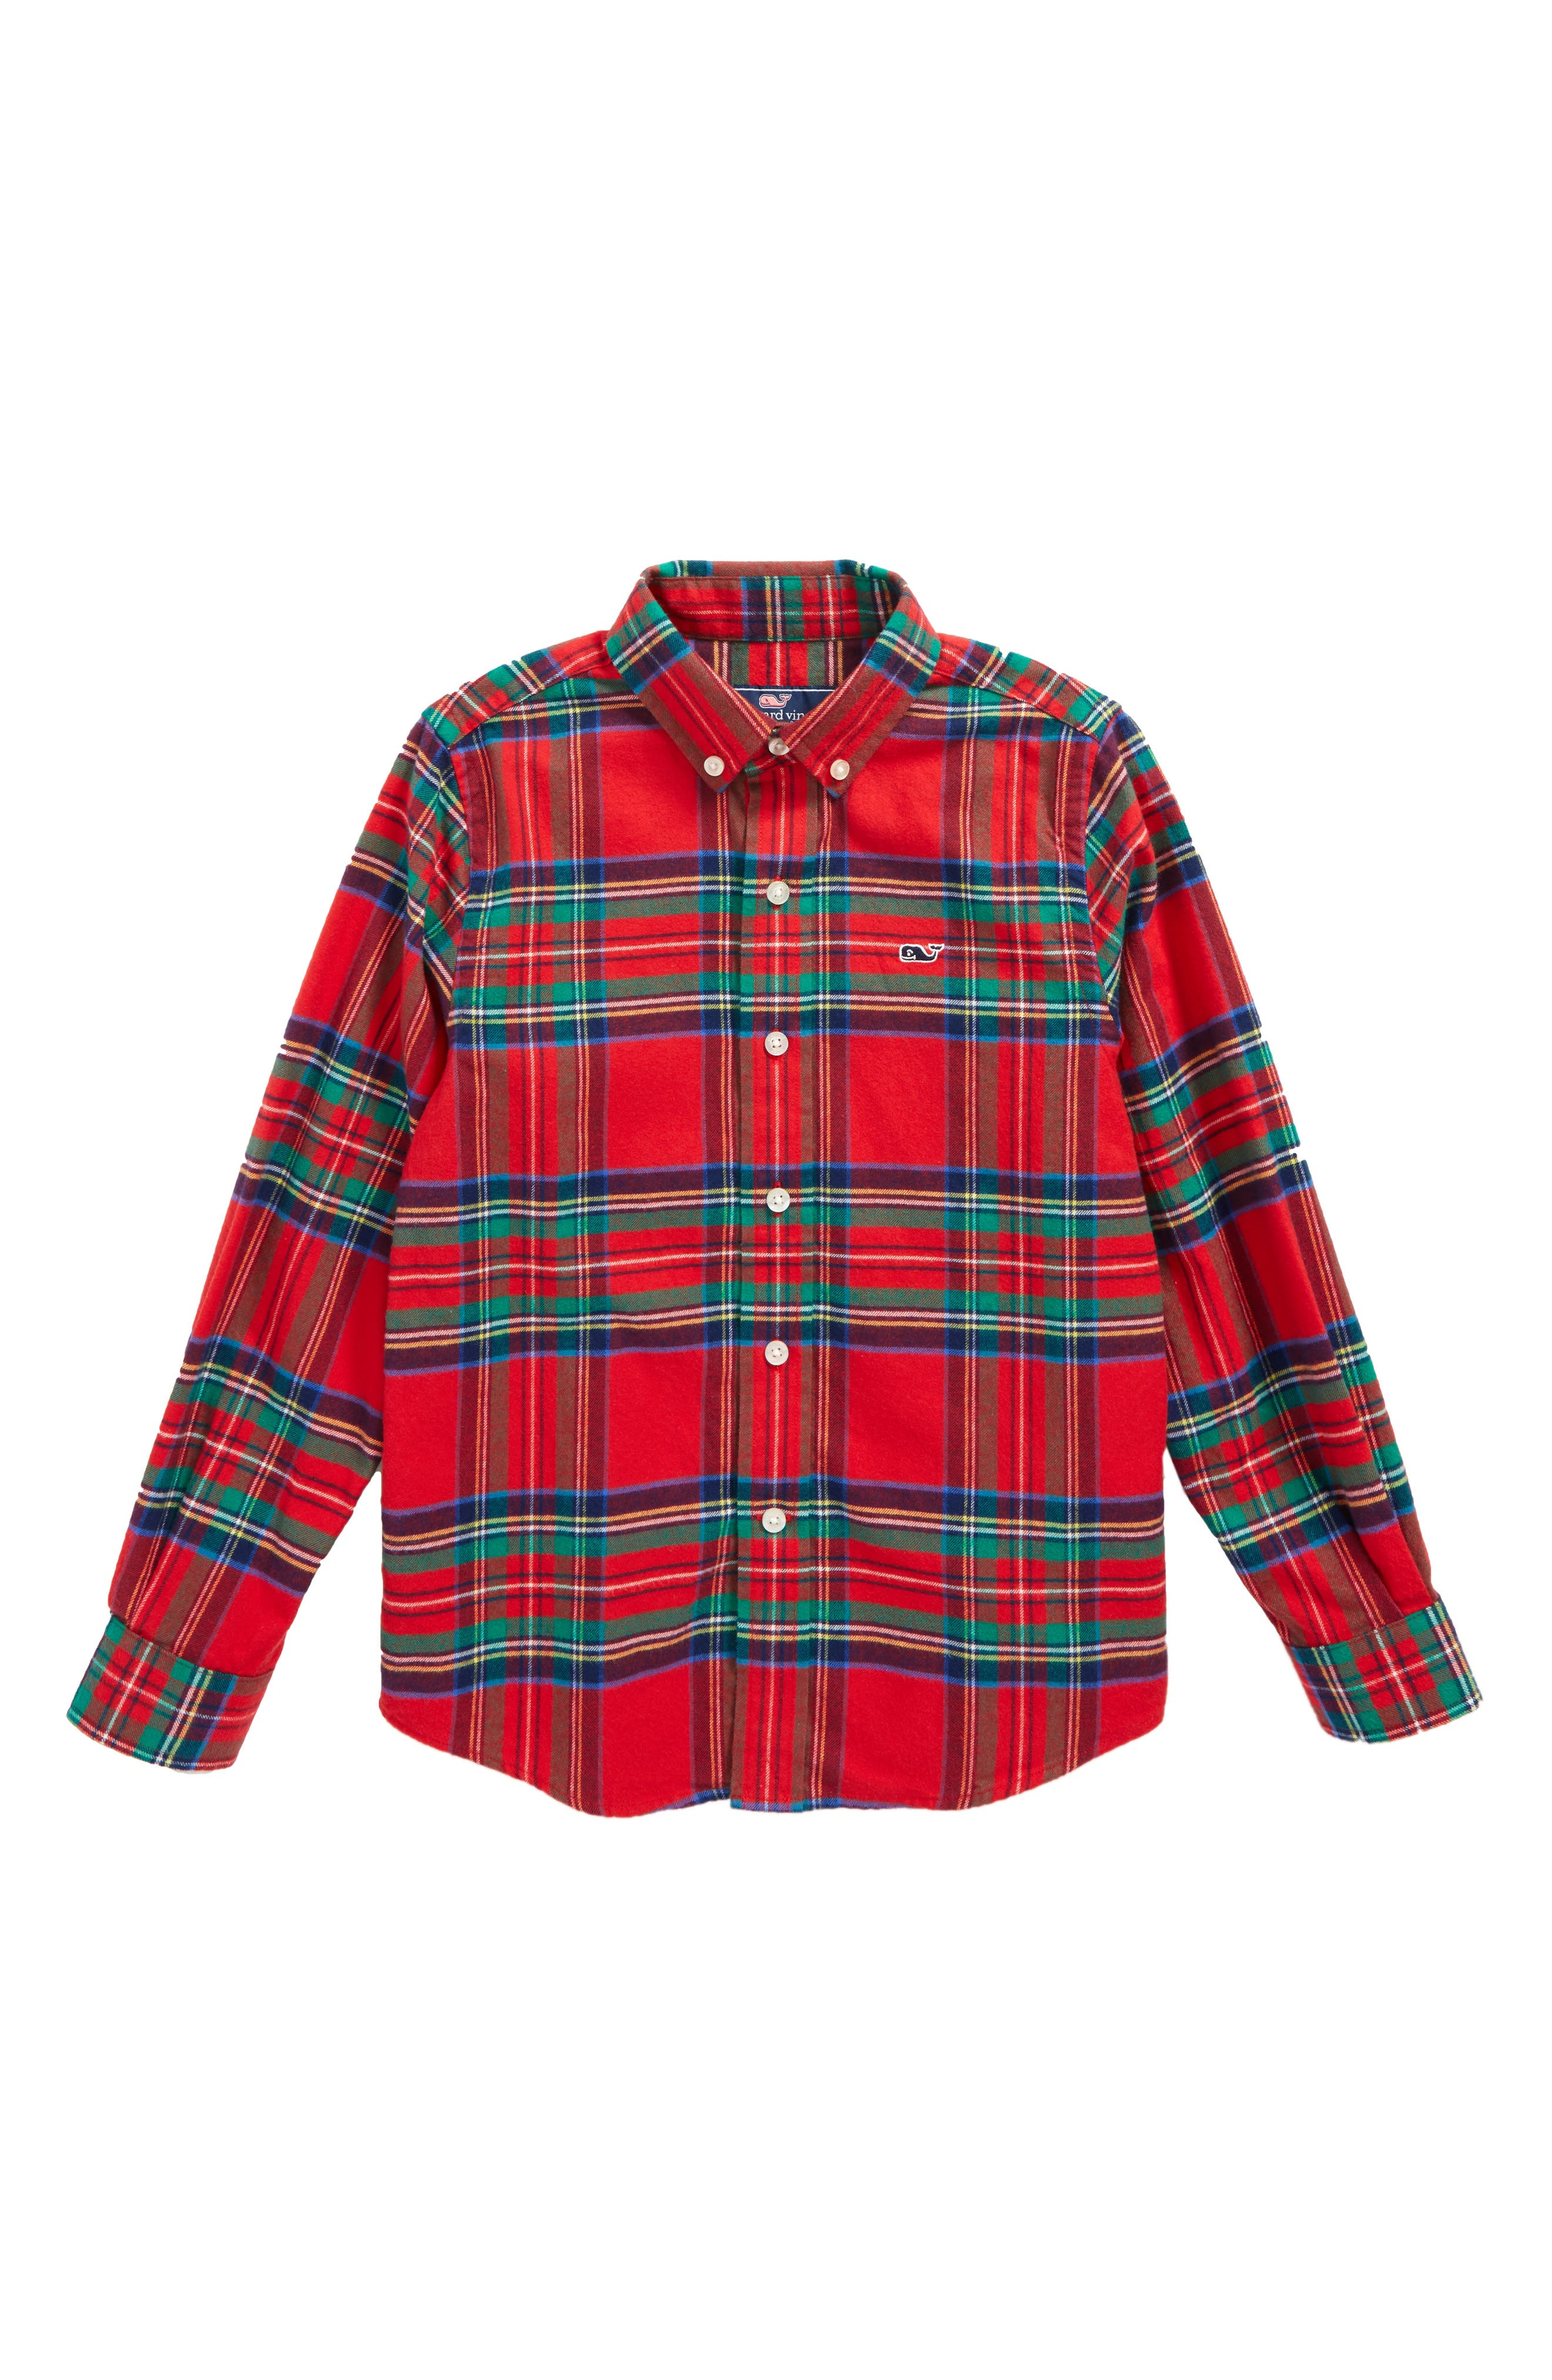 Jolly Plaid Whale Flannel Shirt,                         Main,                         color, 634